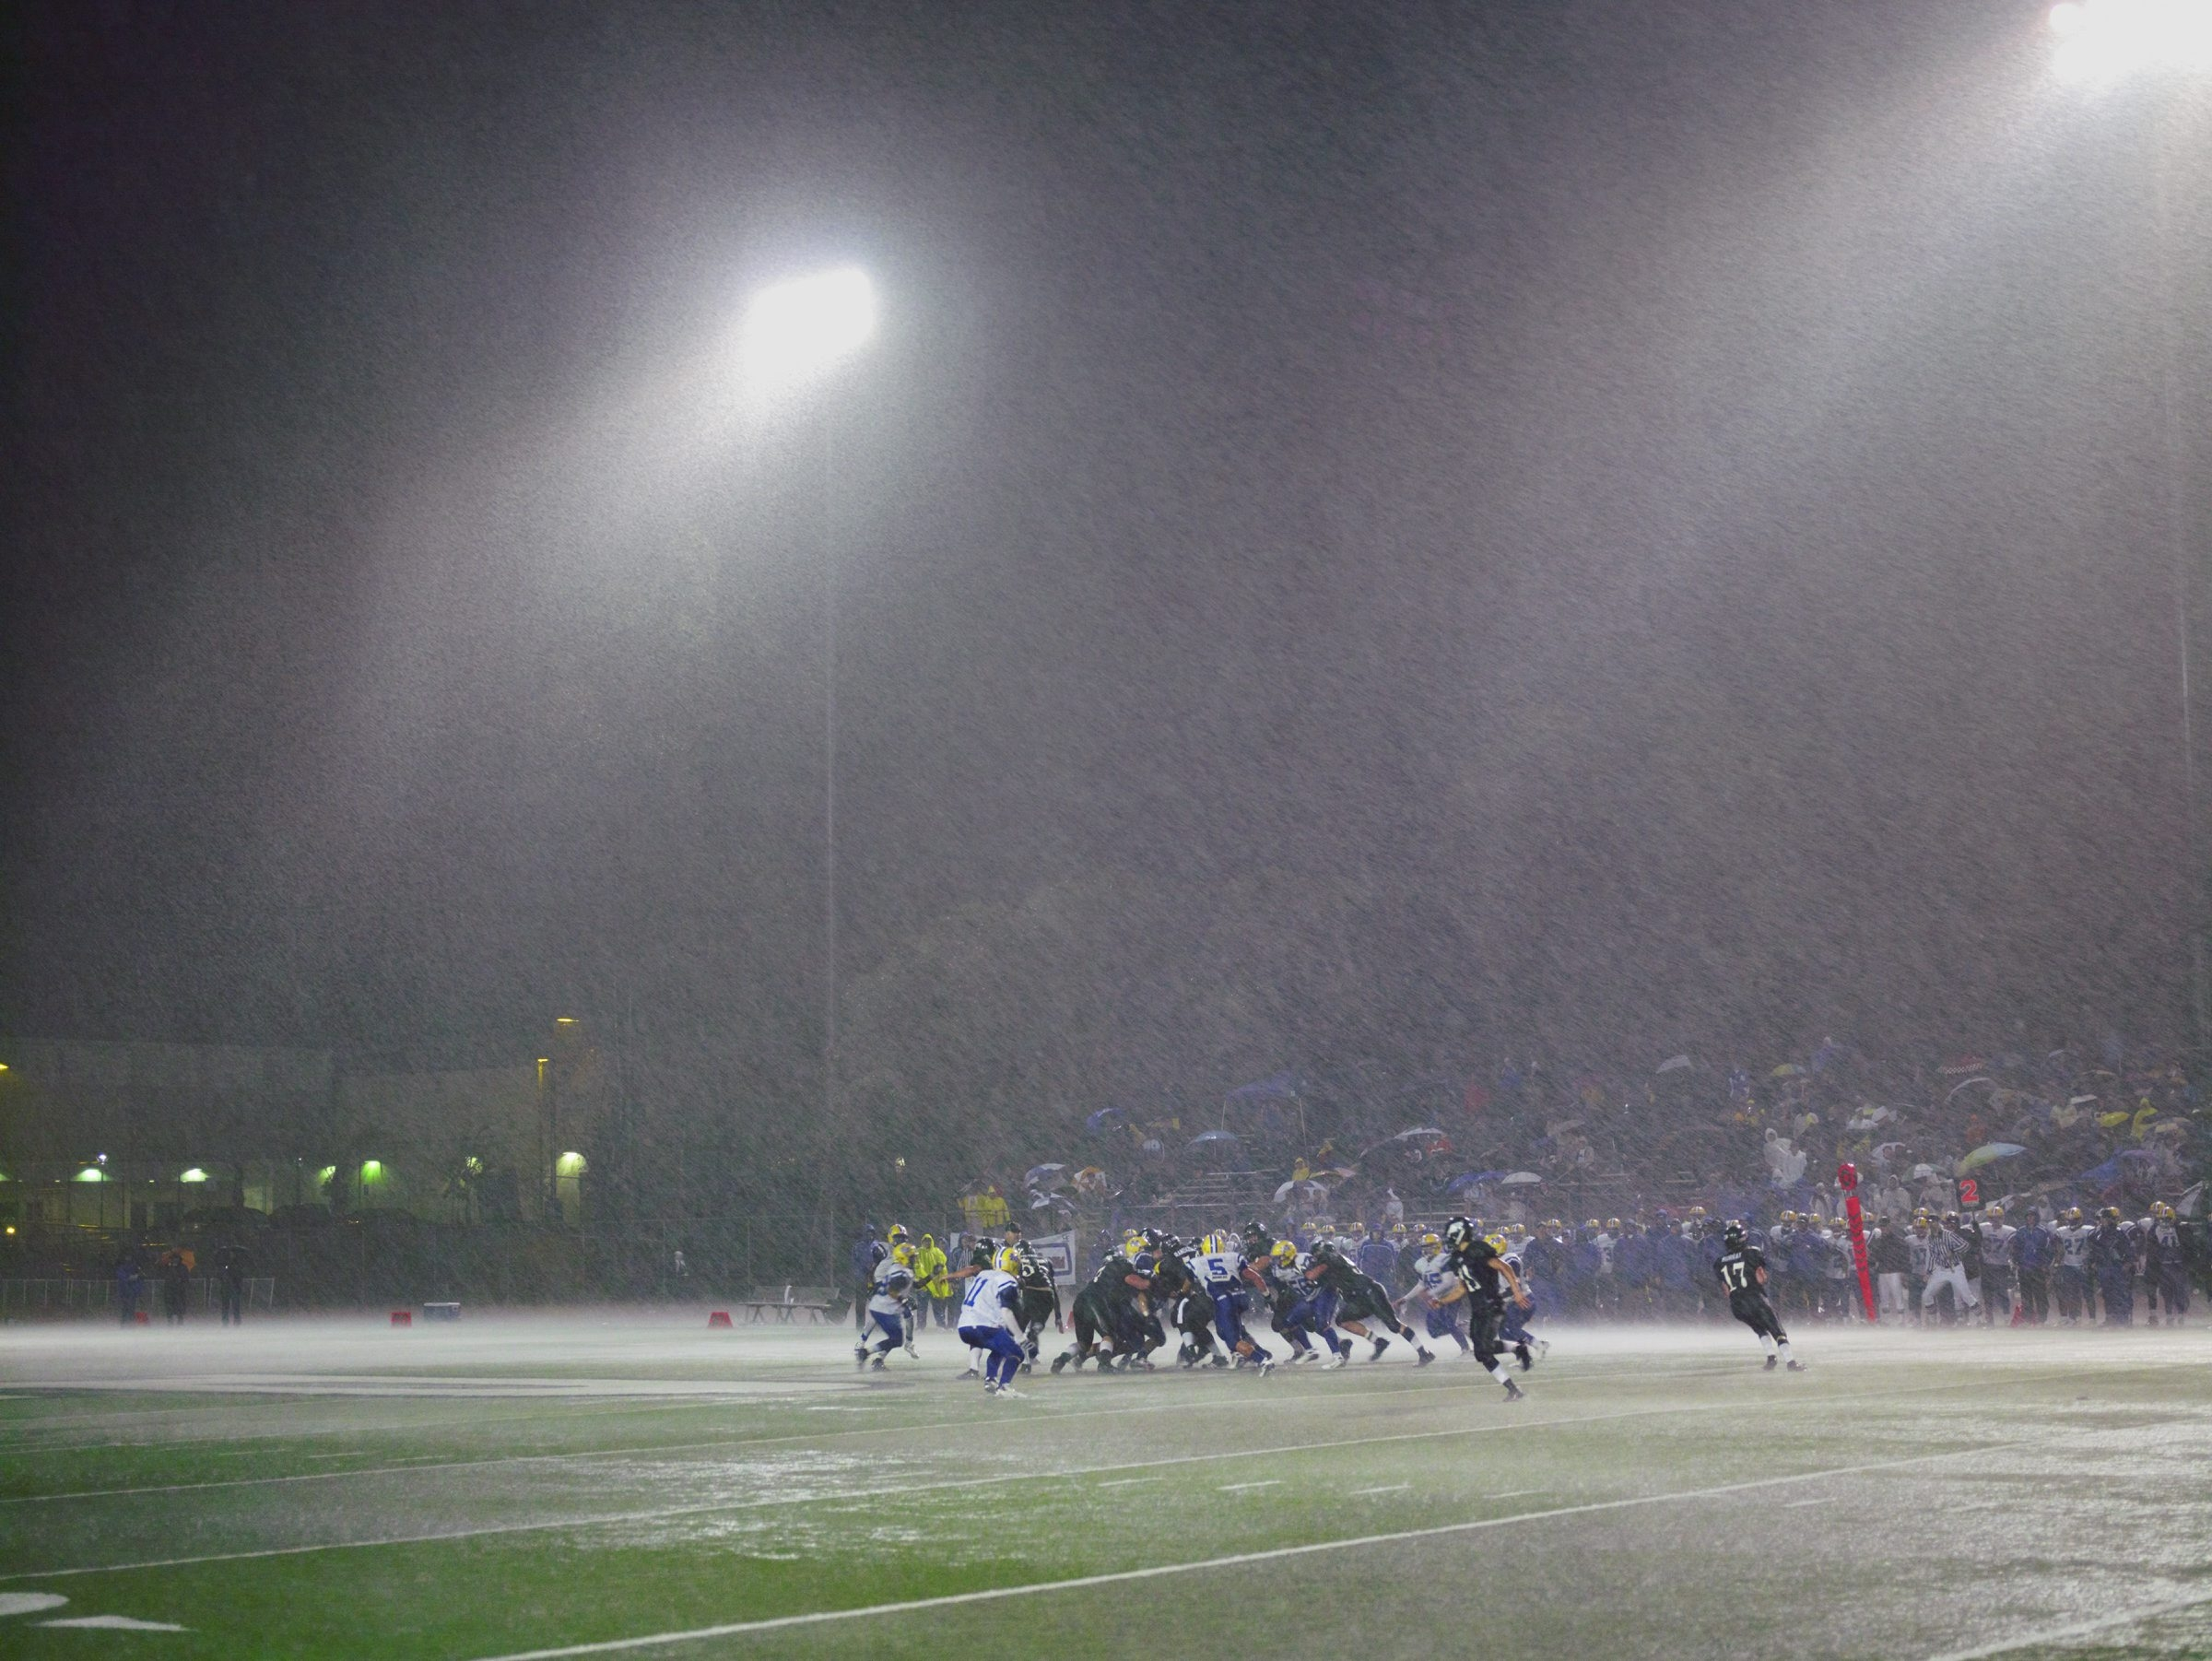 """Catherine Opie's 2007 phtograph """"Football Landscape #10 (Poway vs. Mira Mesa, Poway, CA)"""" is on view in CEPA Gallery as part of the exhibition """"Art of Sport."""""""